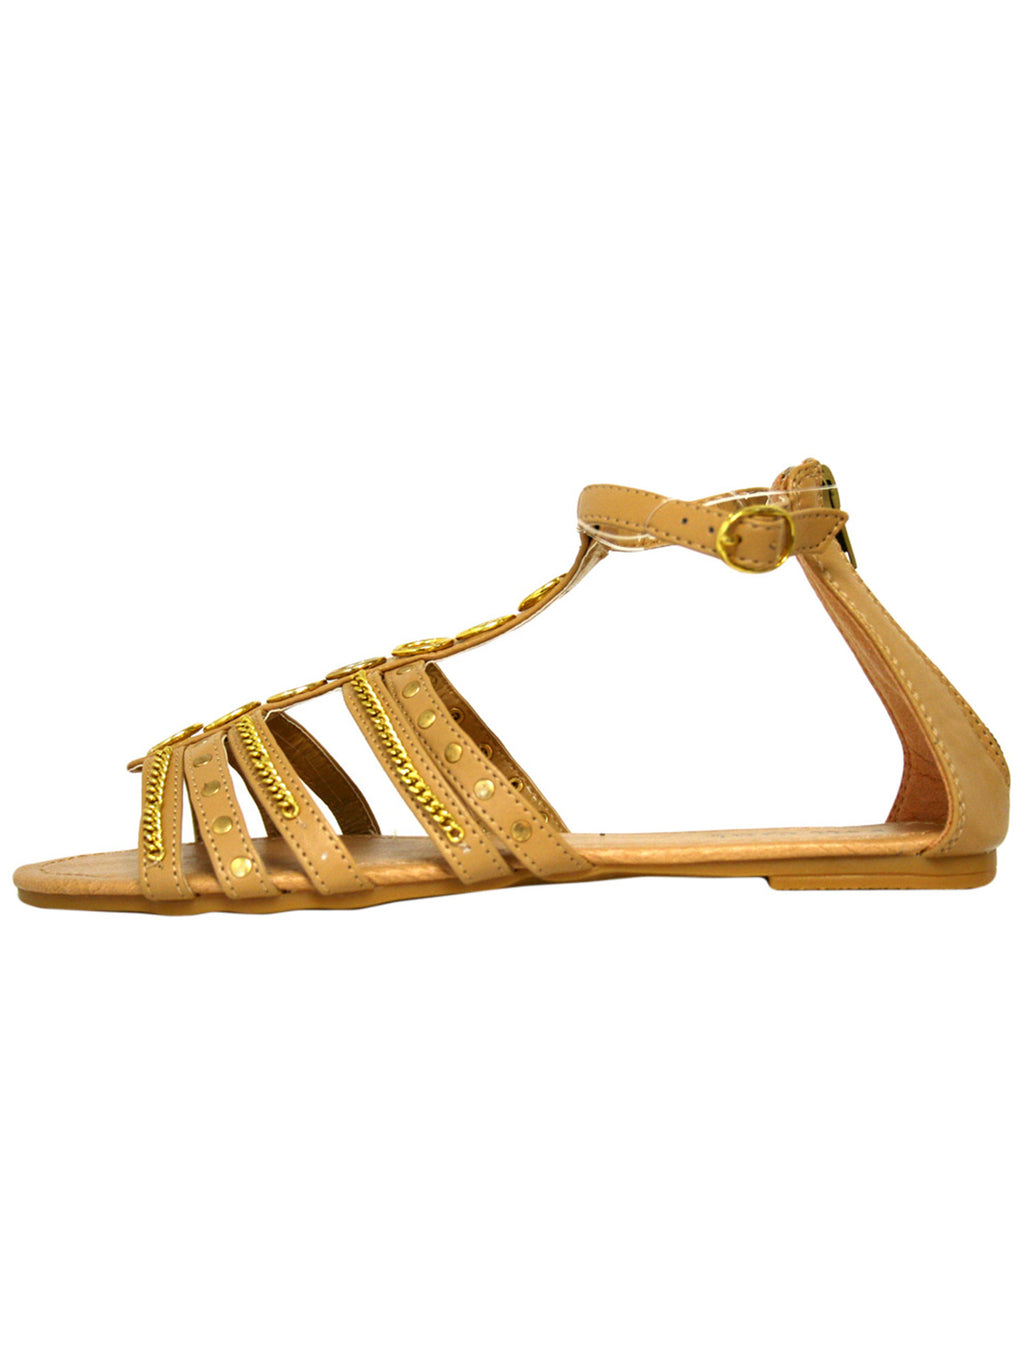 Tan Studded Strappy Womens Sandals With Chain Trim